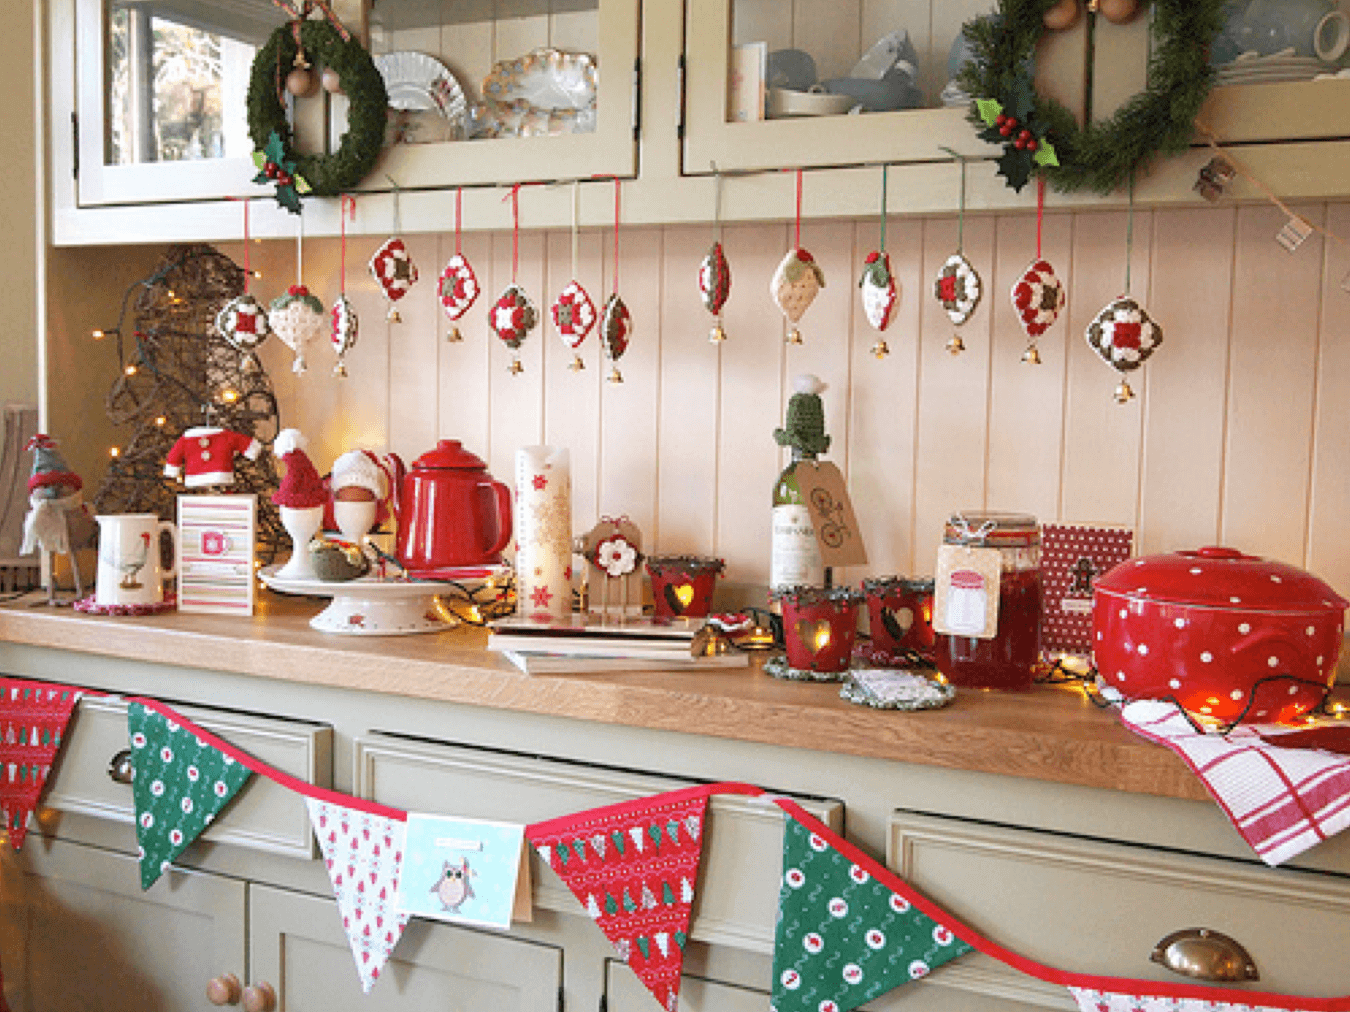 The amazing tradition of Christmas kitchen decor